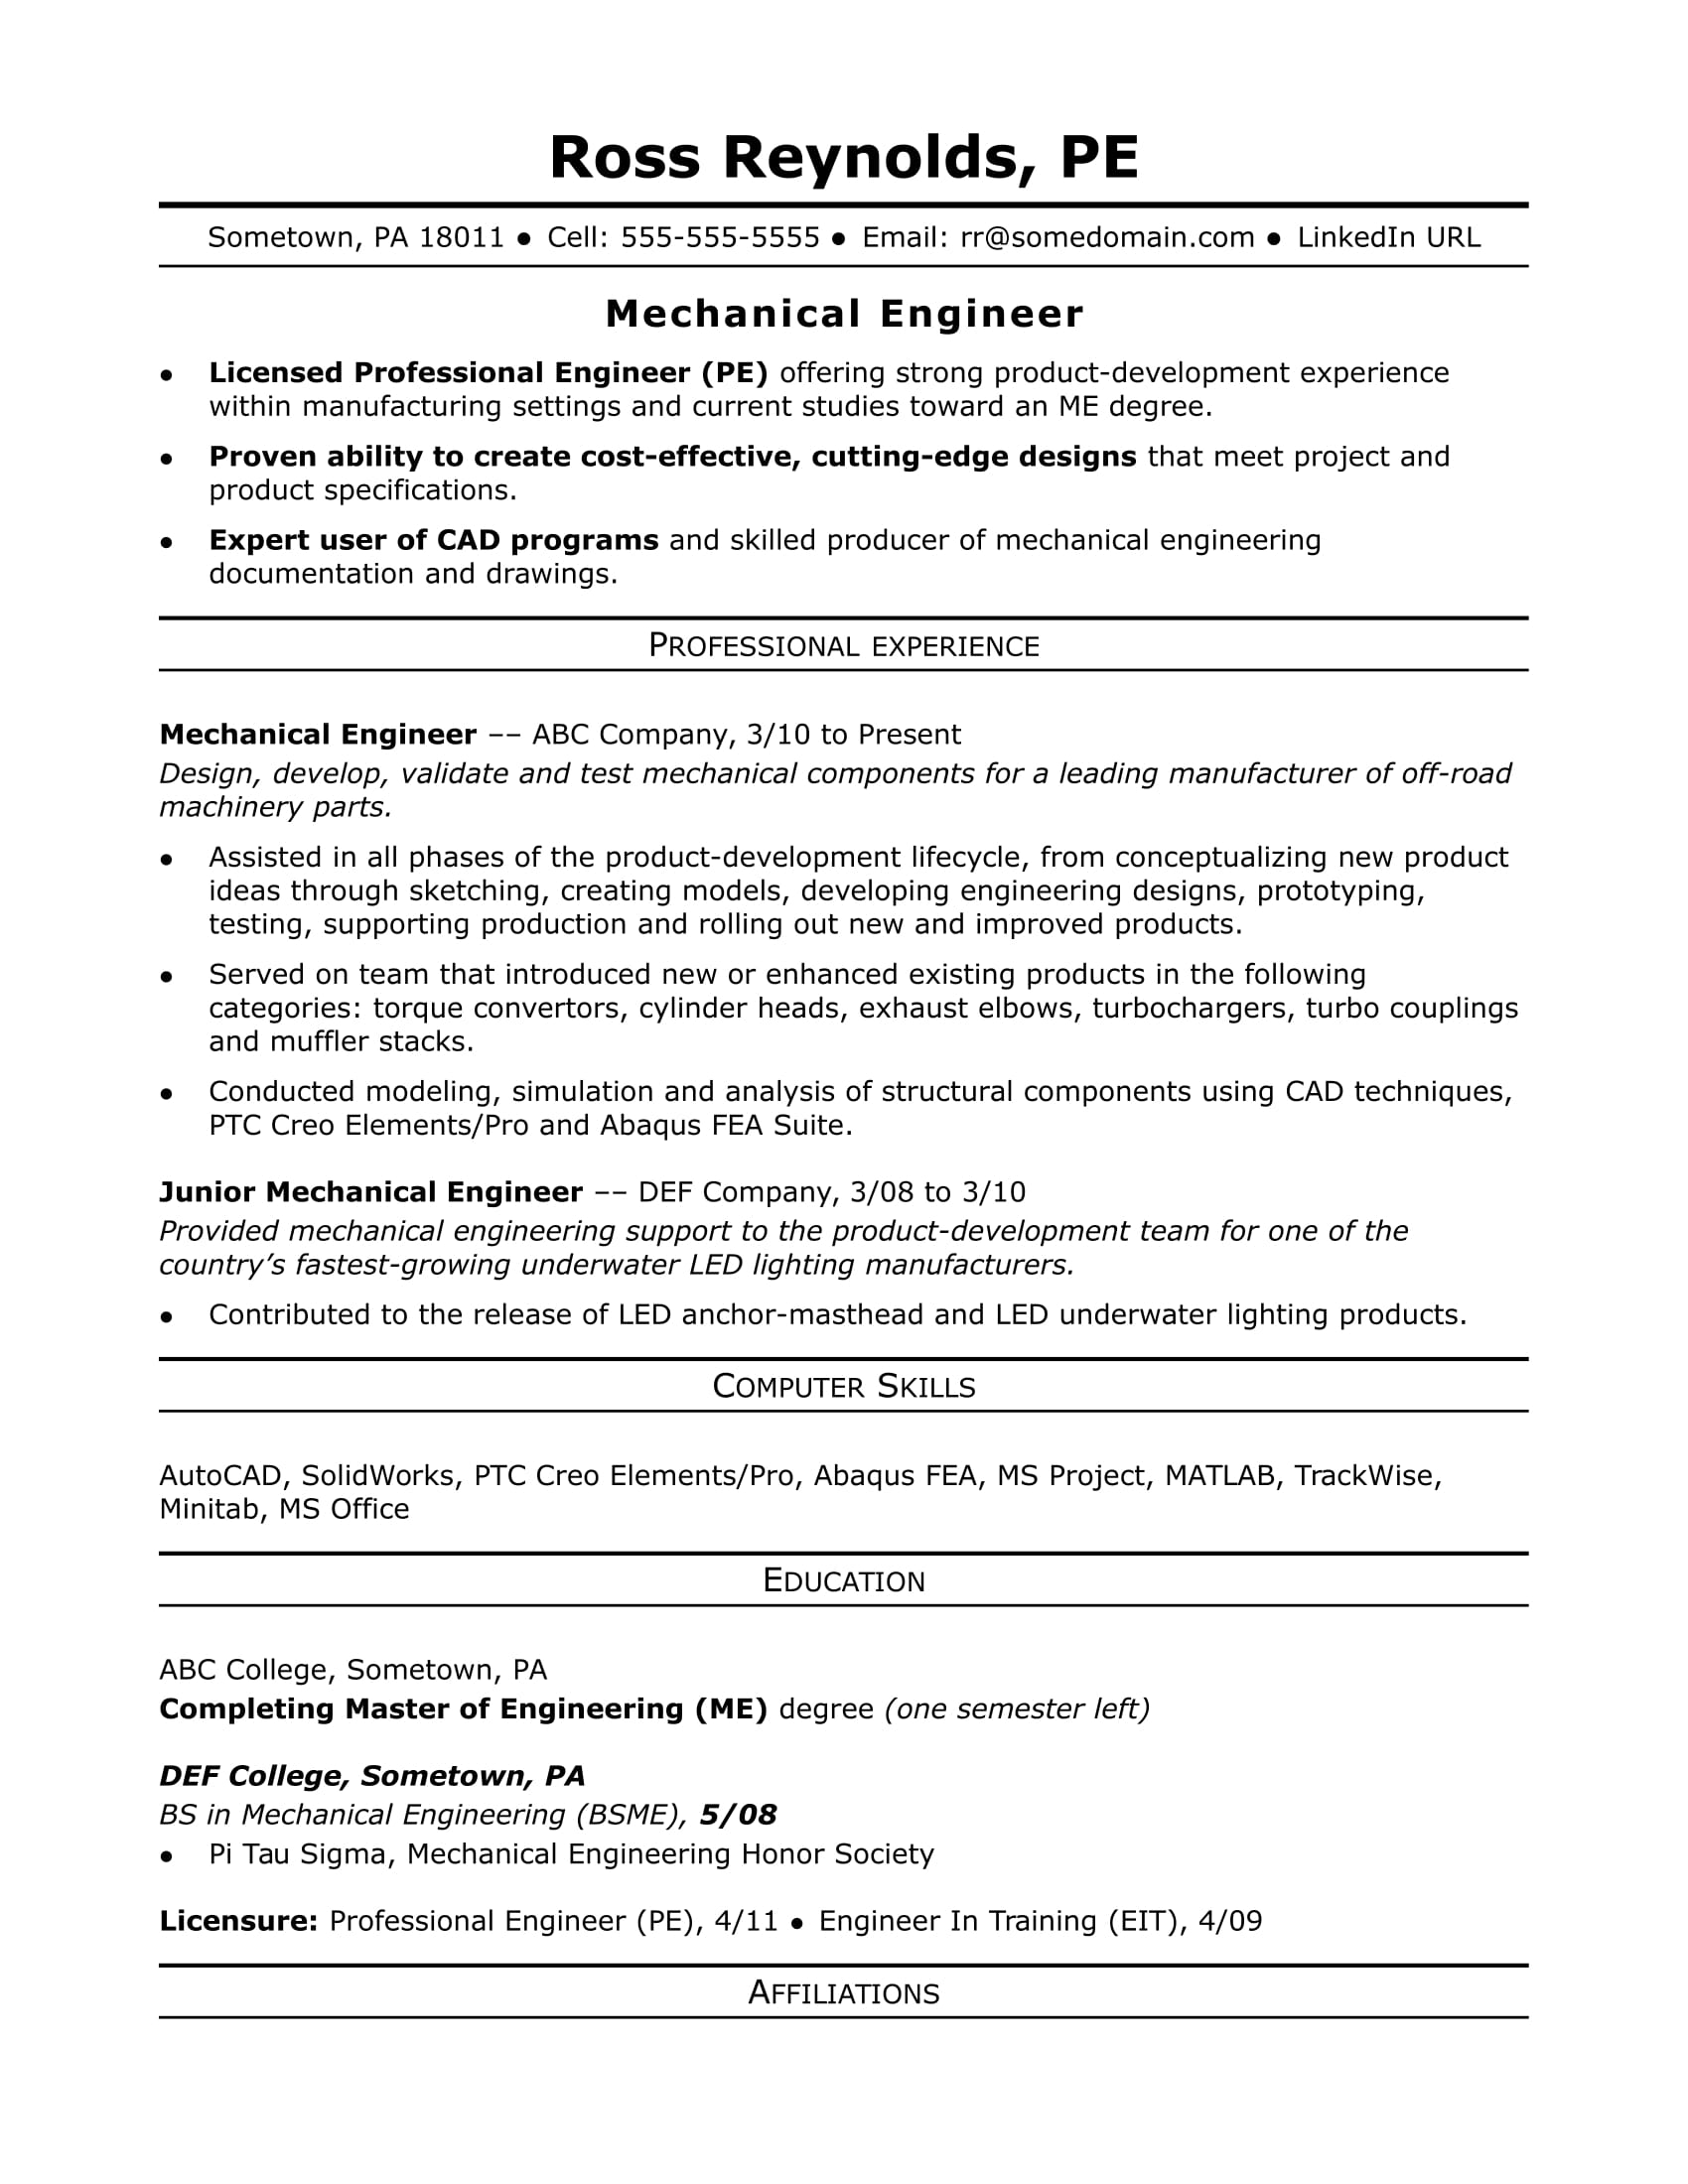 Resume For Mechanical